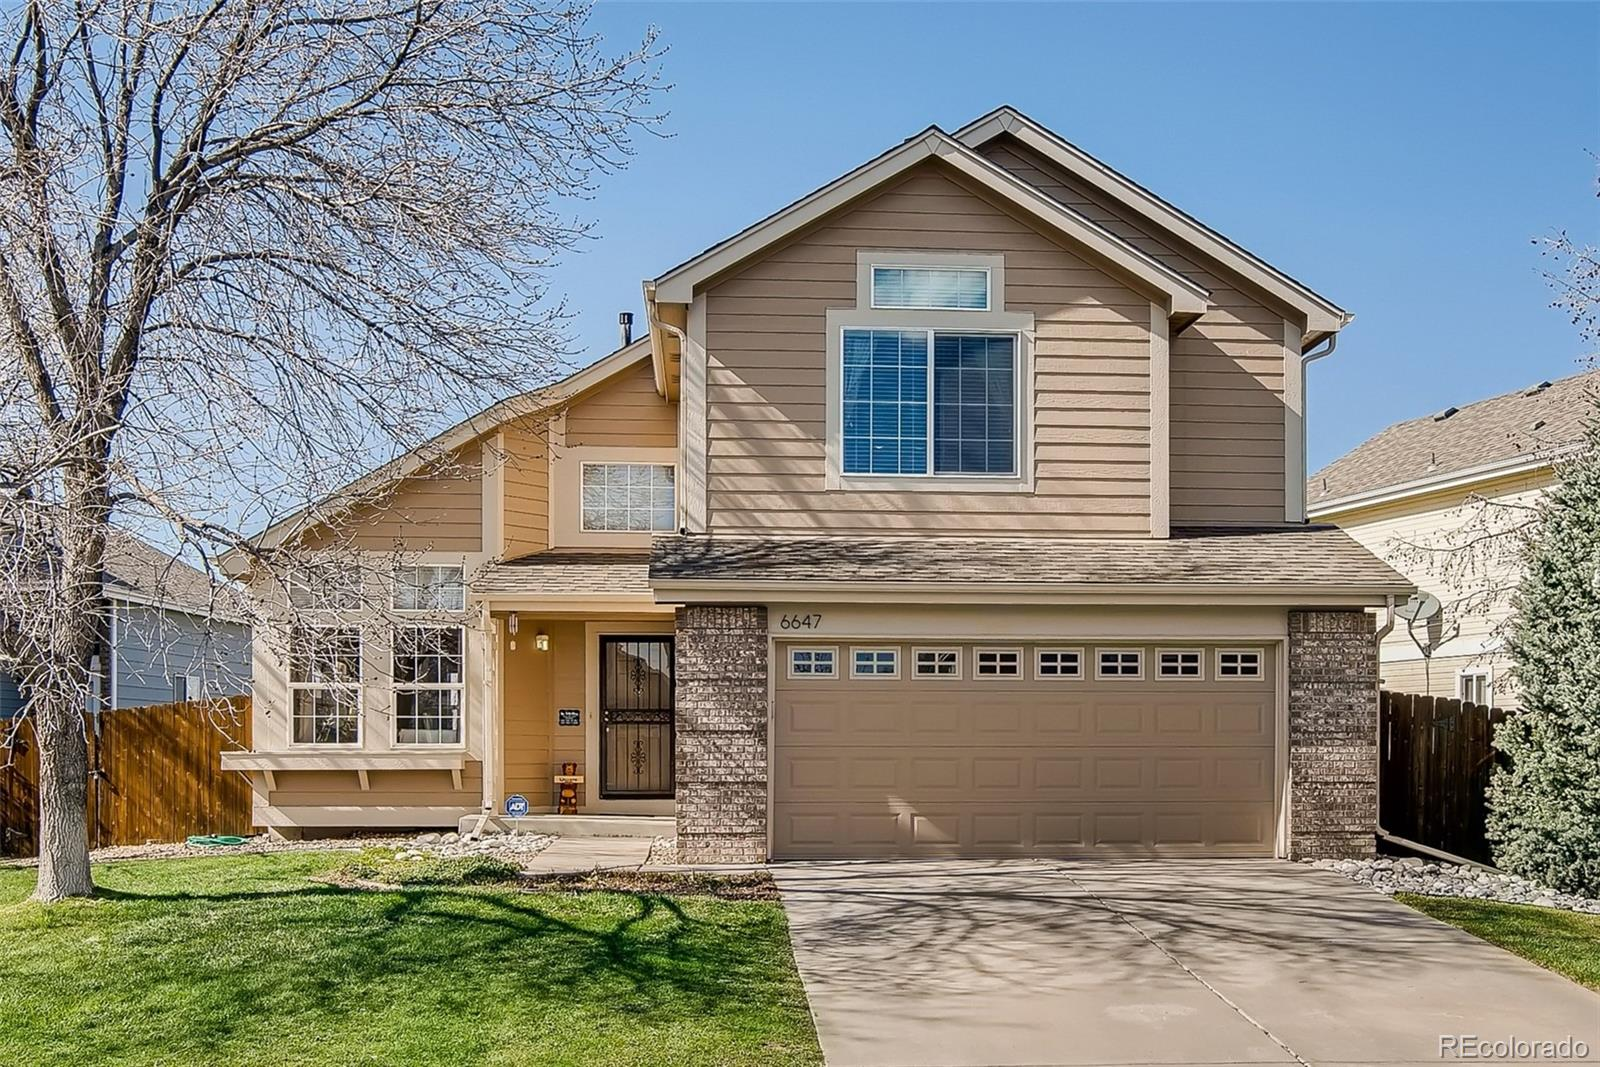 6647 W 96th Place Property Photo - Westminster, CO real estate listing